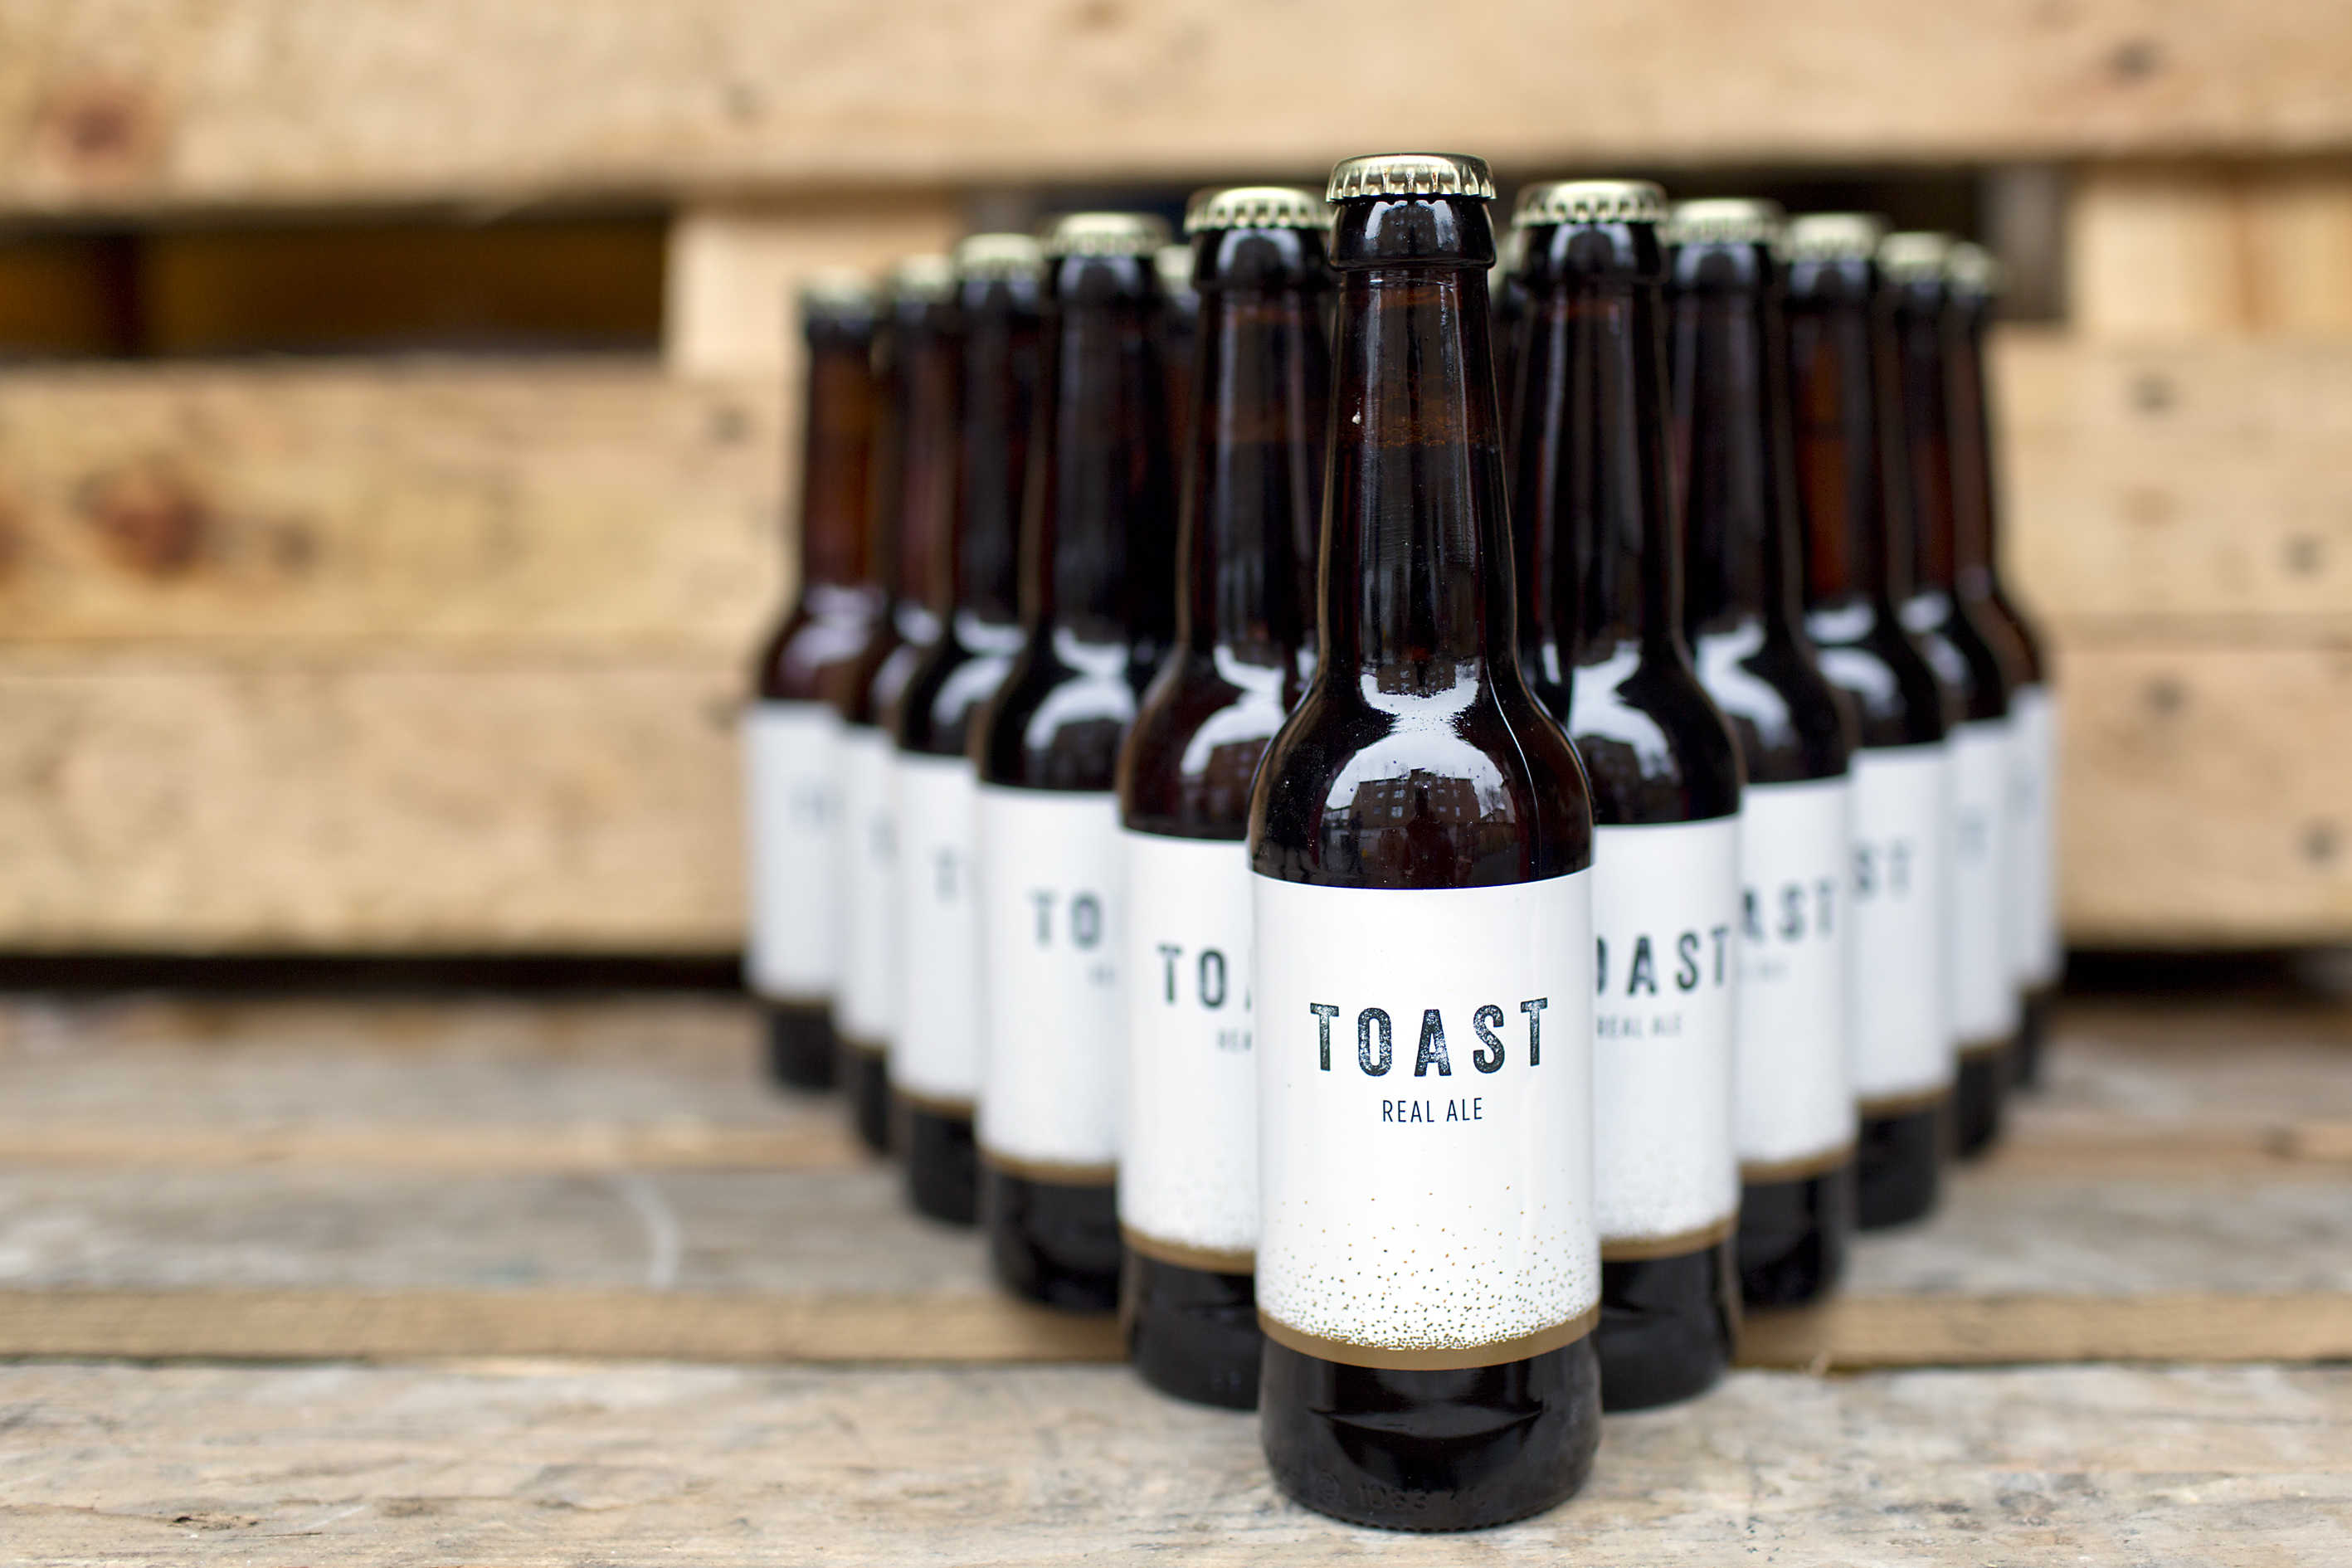 Toast Ale Rob Wilson Mentor Session.jpg